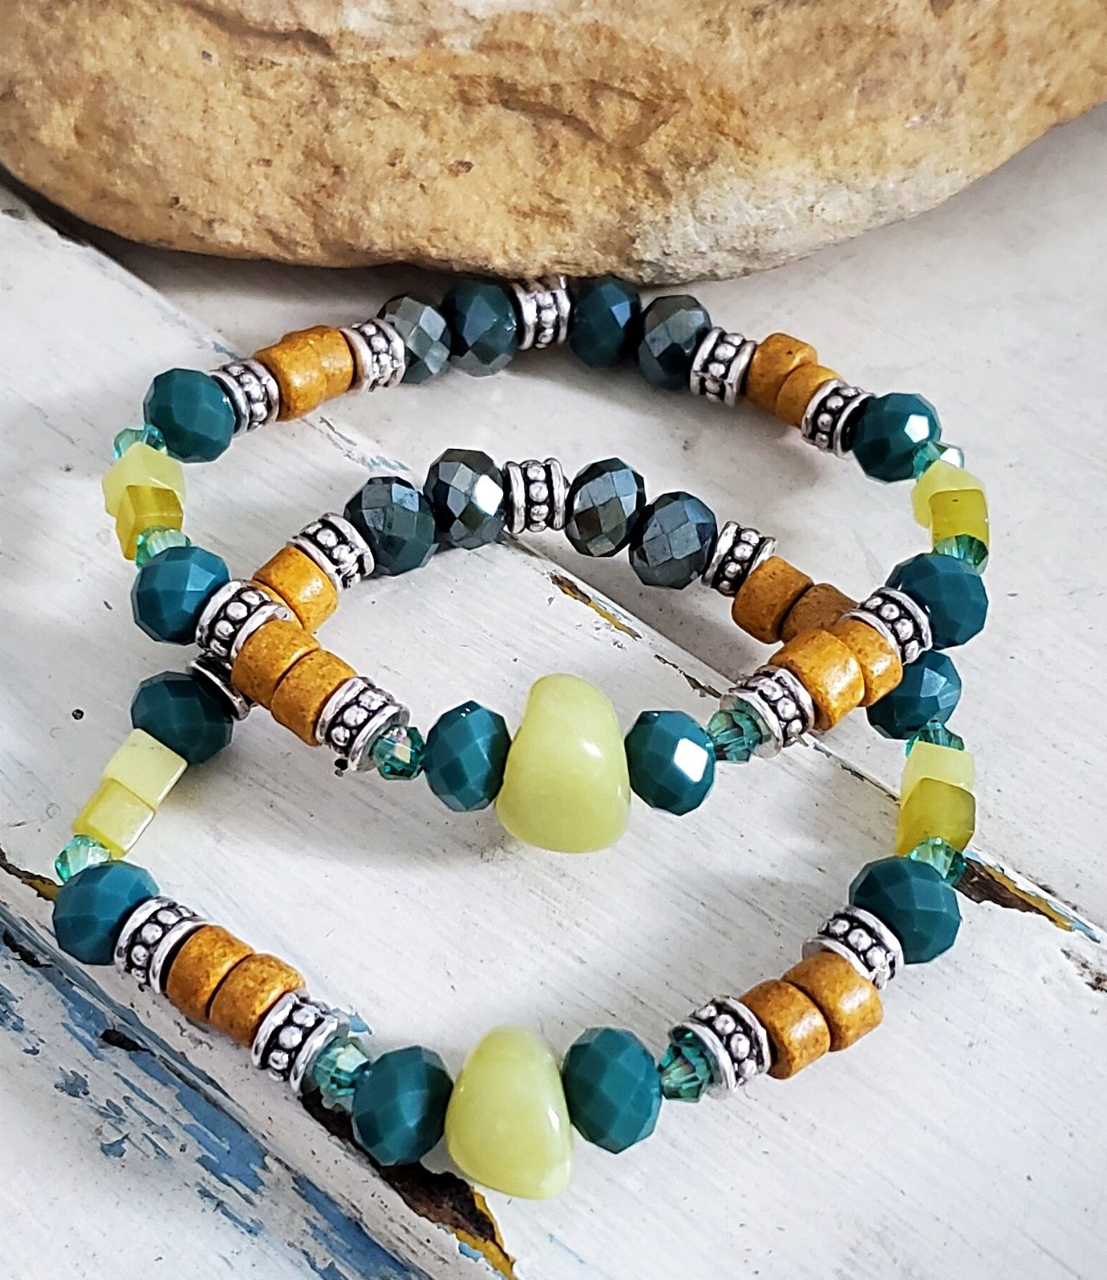 mixed green gemstone bracelet stack against rocks